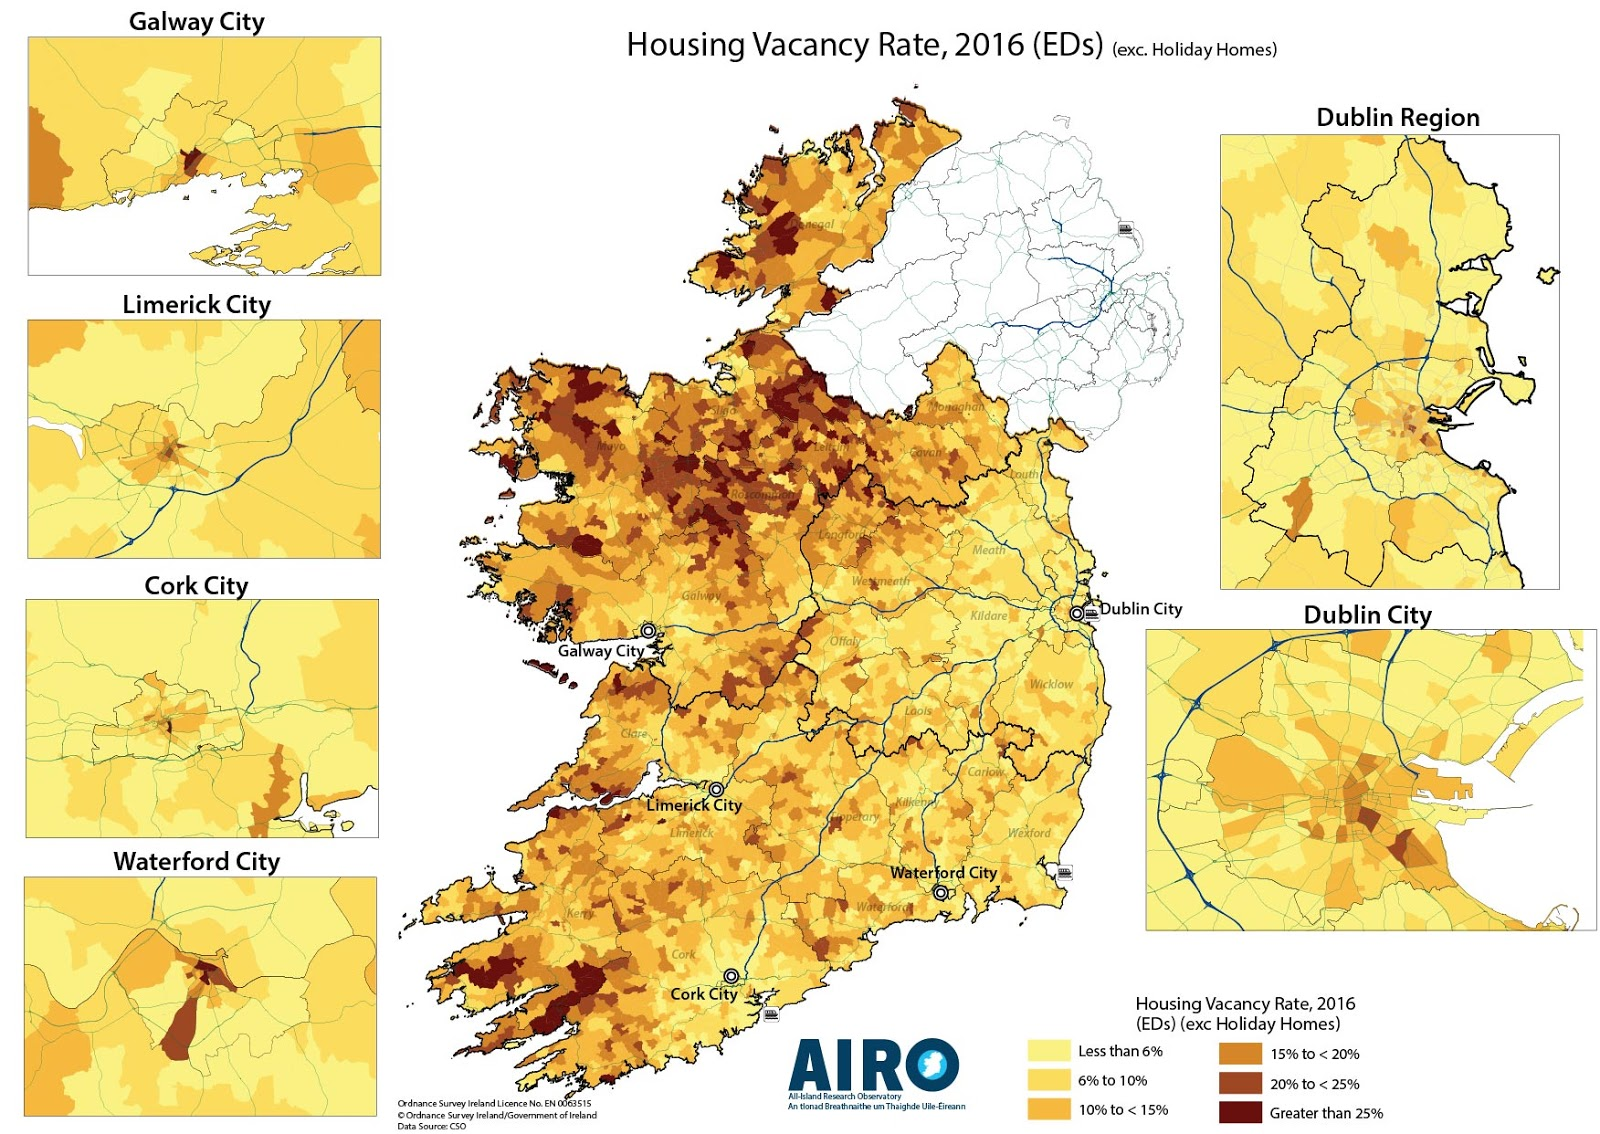 Housing Vacancy Rate in Ireland